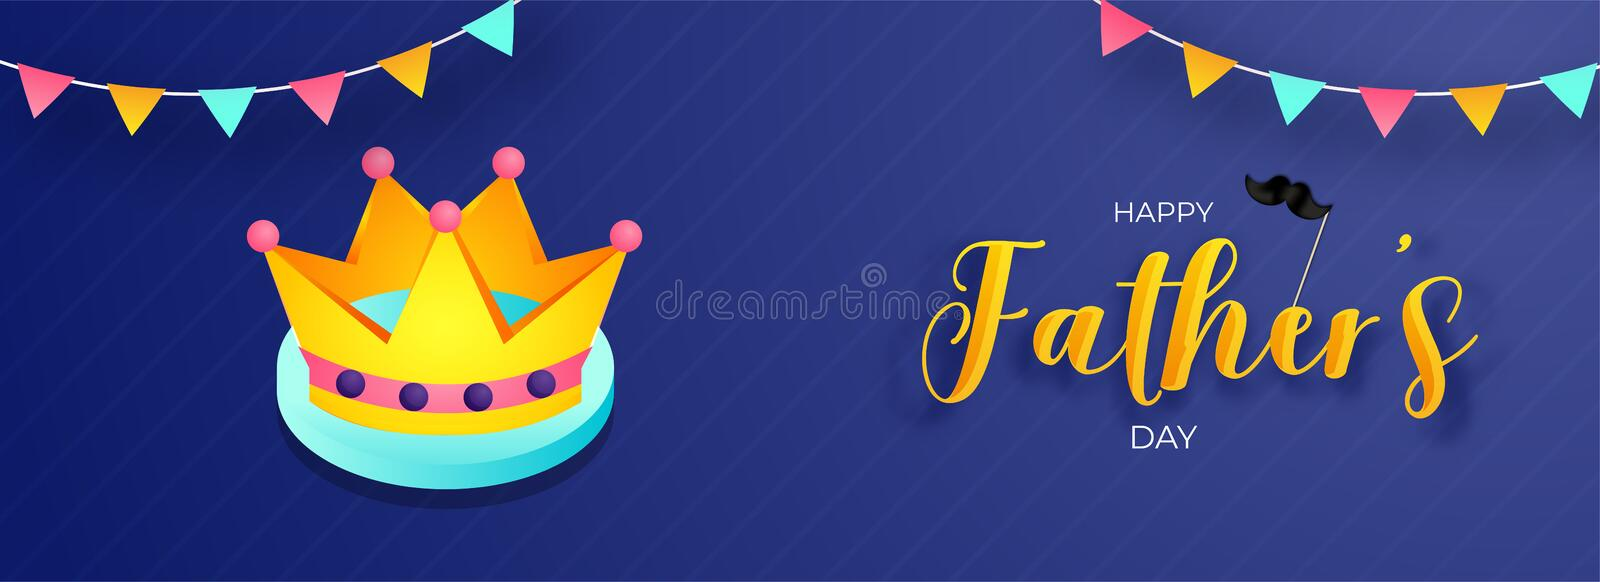 Happy Father`s Day celebration header or banner design with illustration of crown and bunting flag. vector illustration